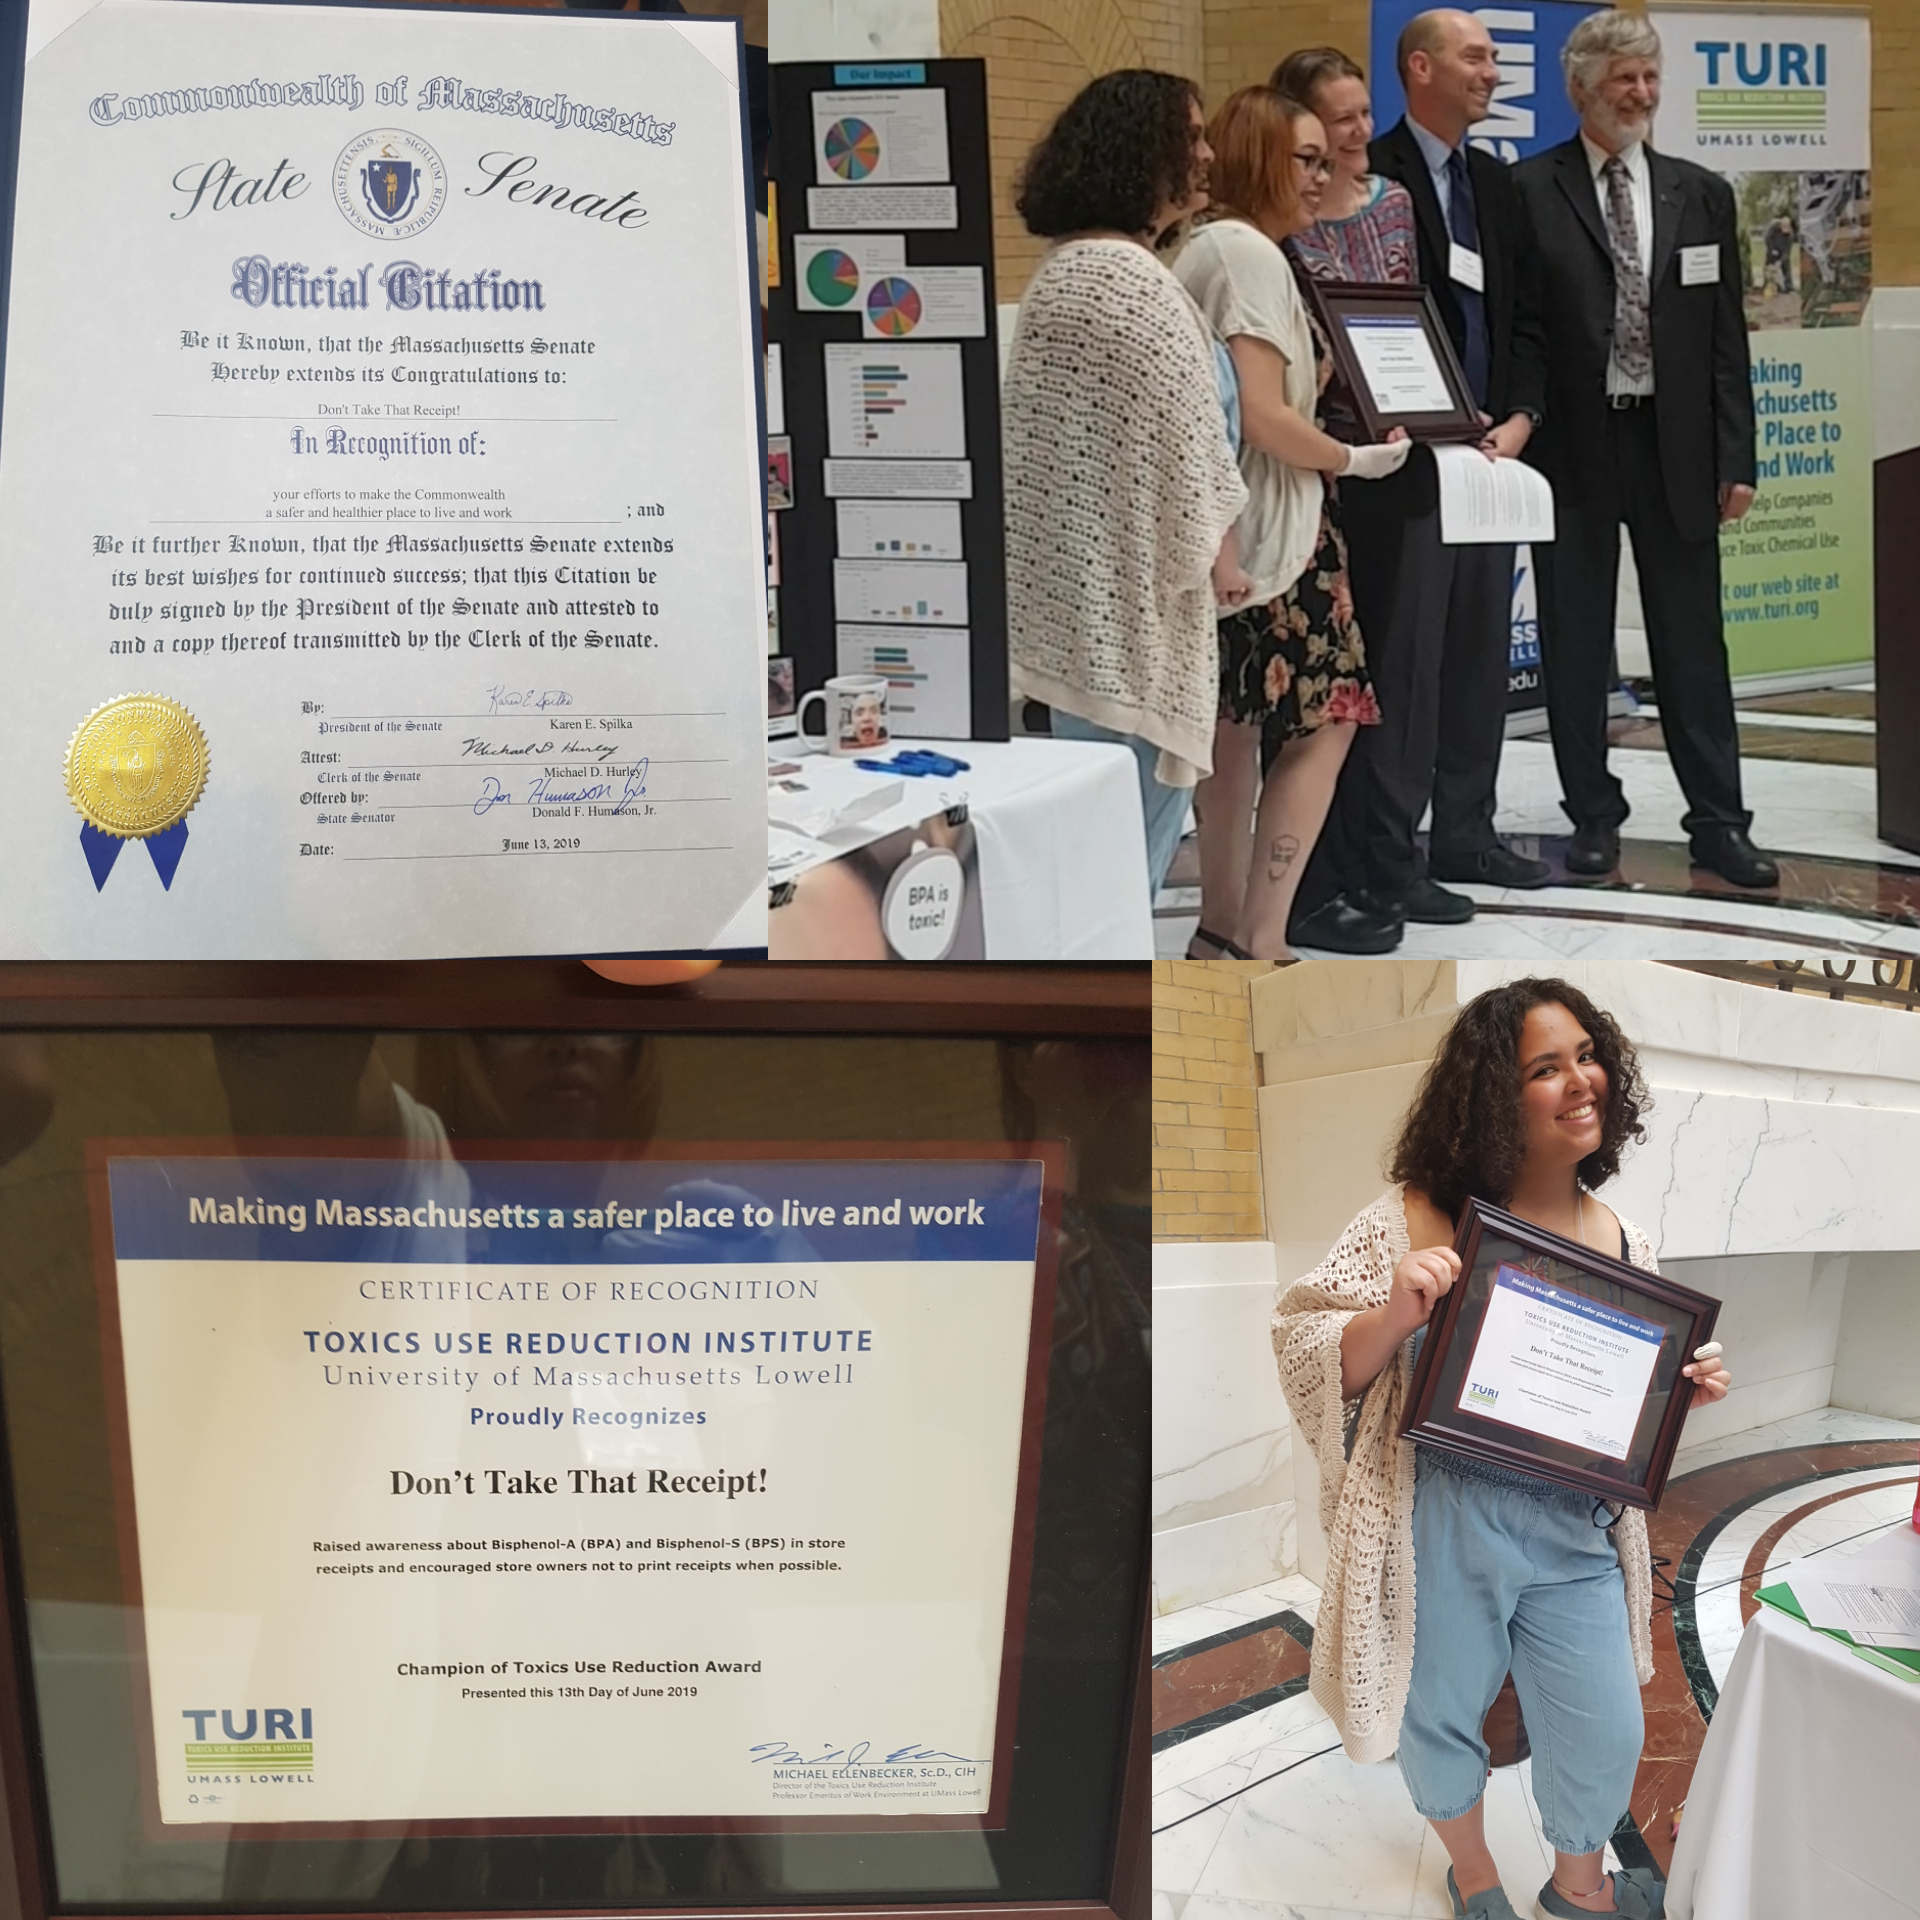 Thank you to TURI for supporting and honoring Don't Take That Receipt! in our continuing efforts in making the world less toxic!